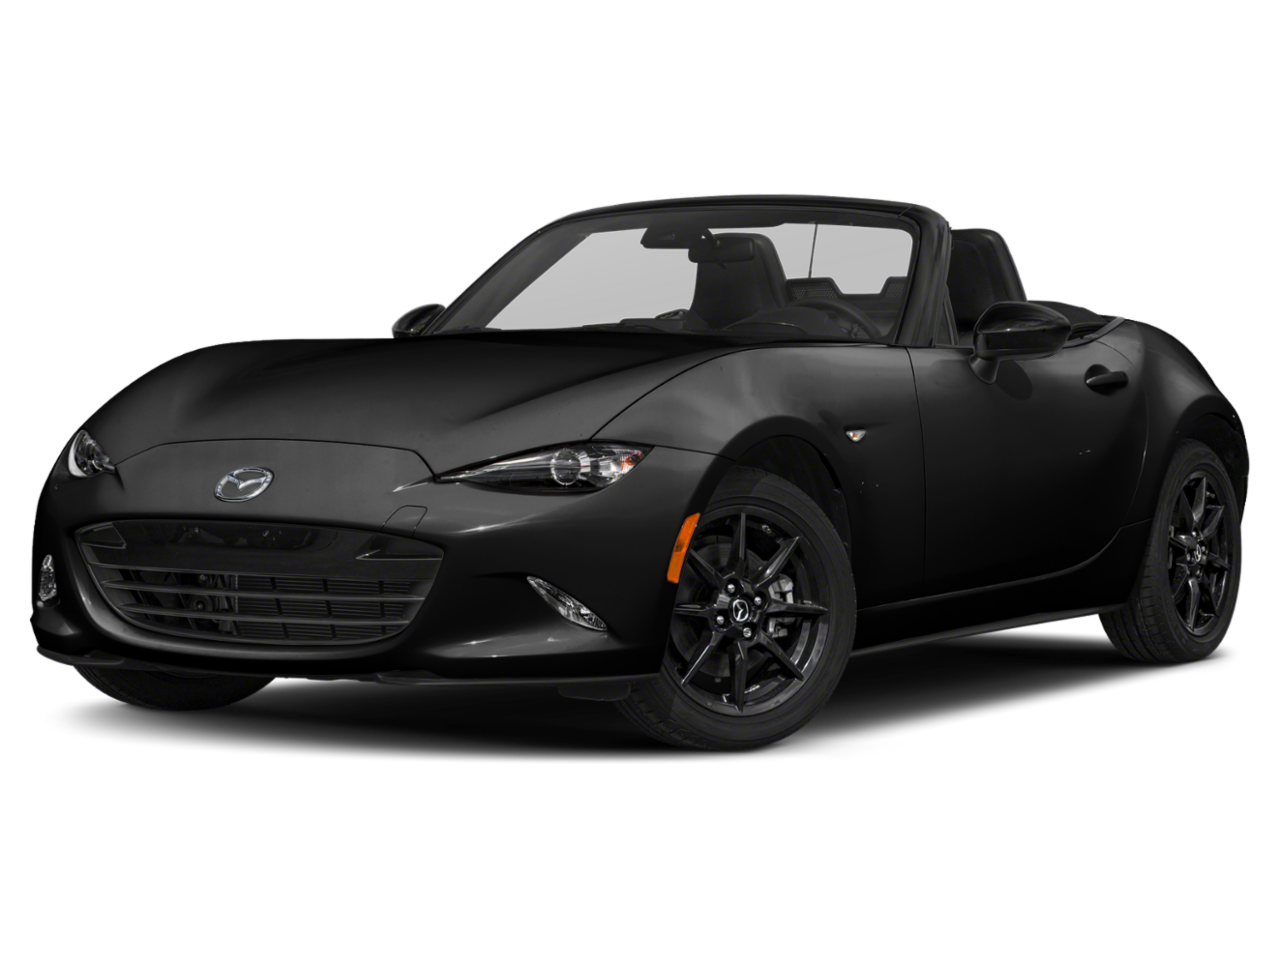 New 2020 Mazda MX-5 Miata Sport